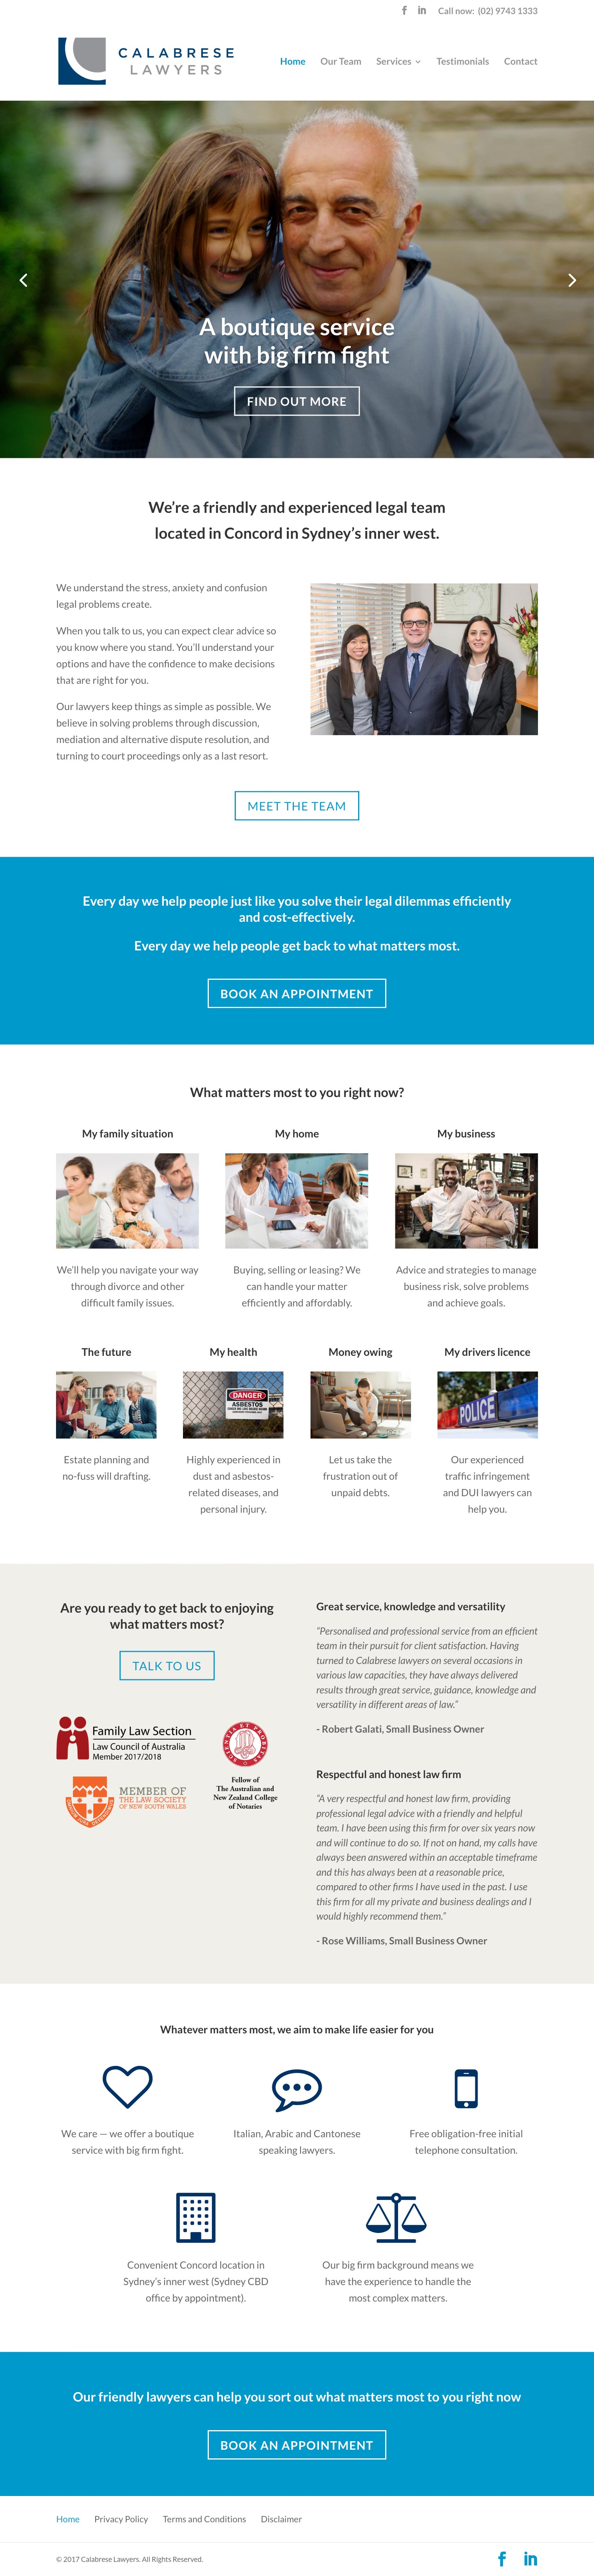 Web Design - Calabrese Lawyers